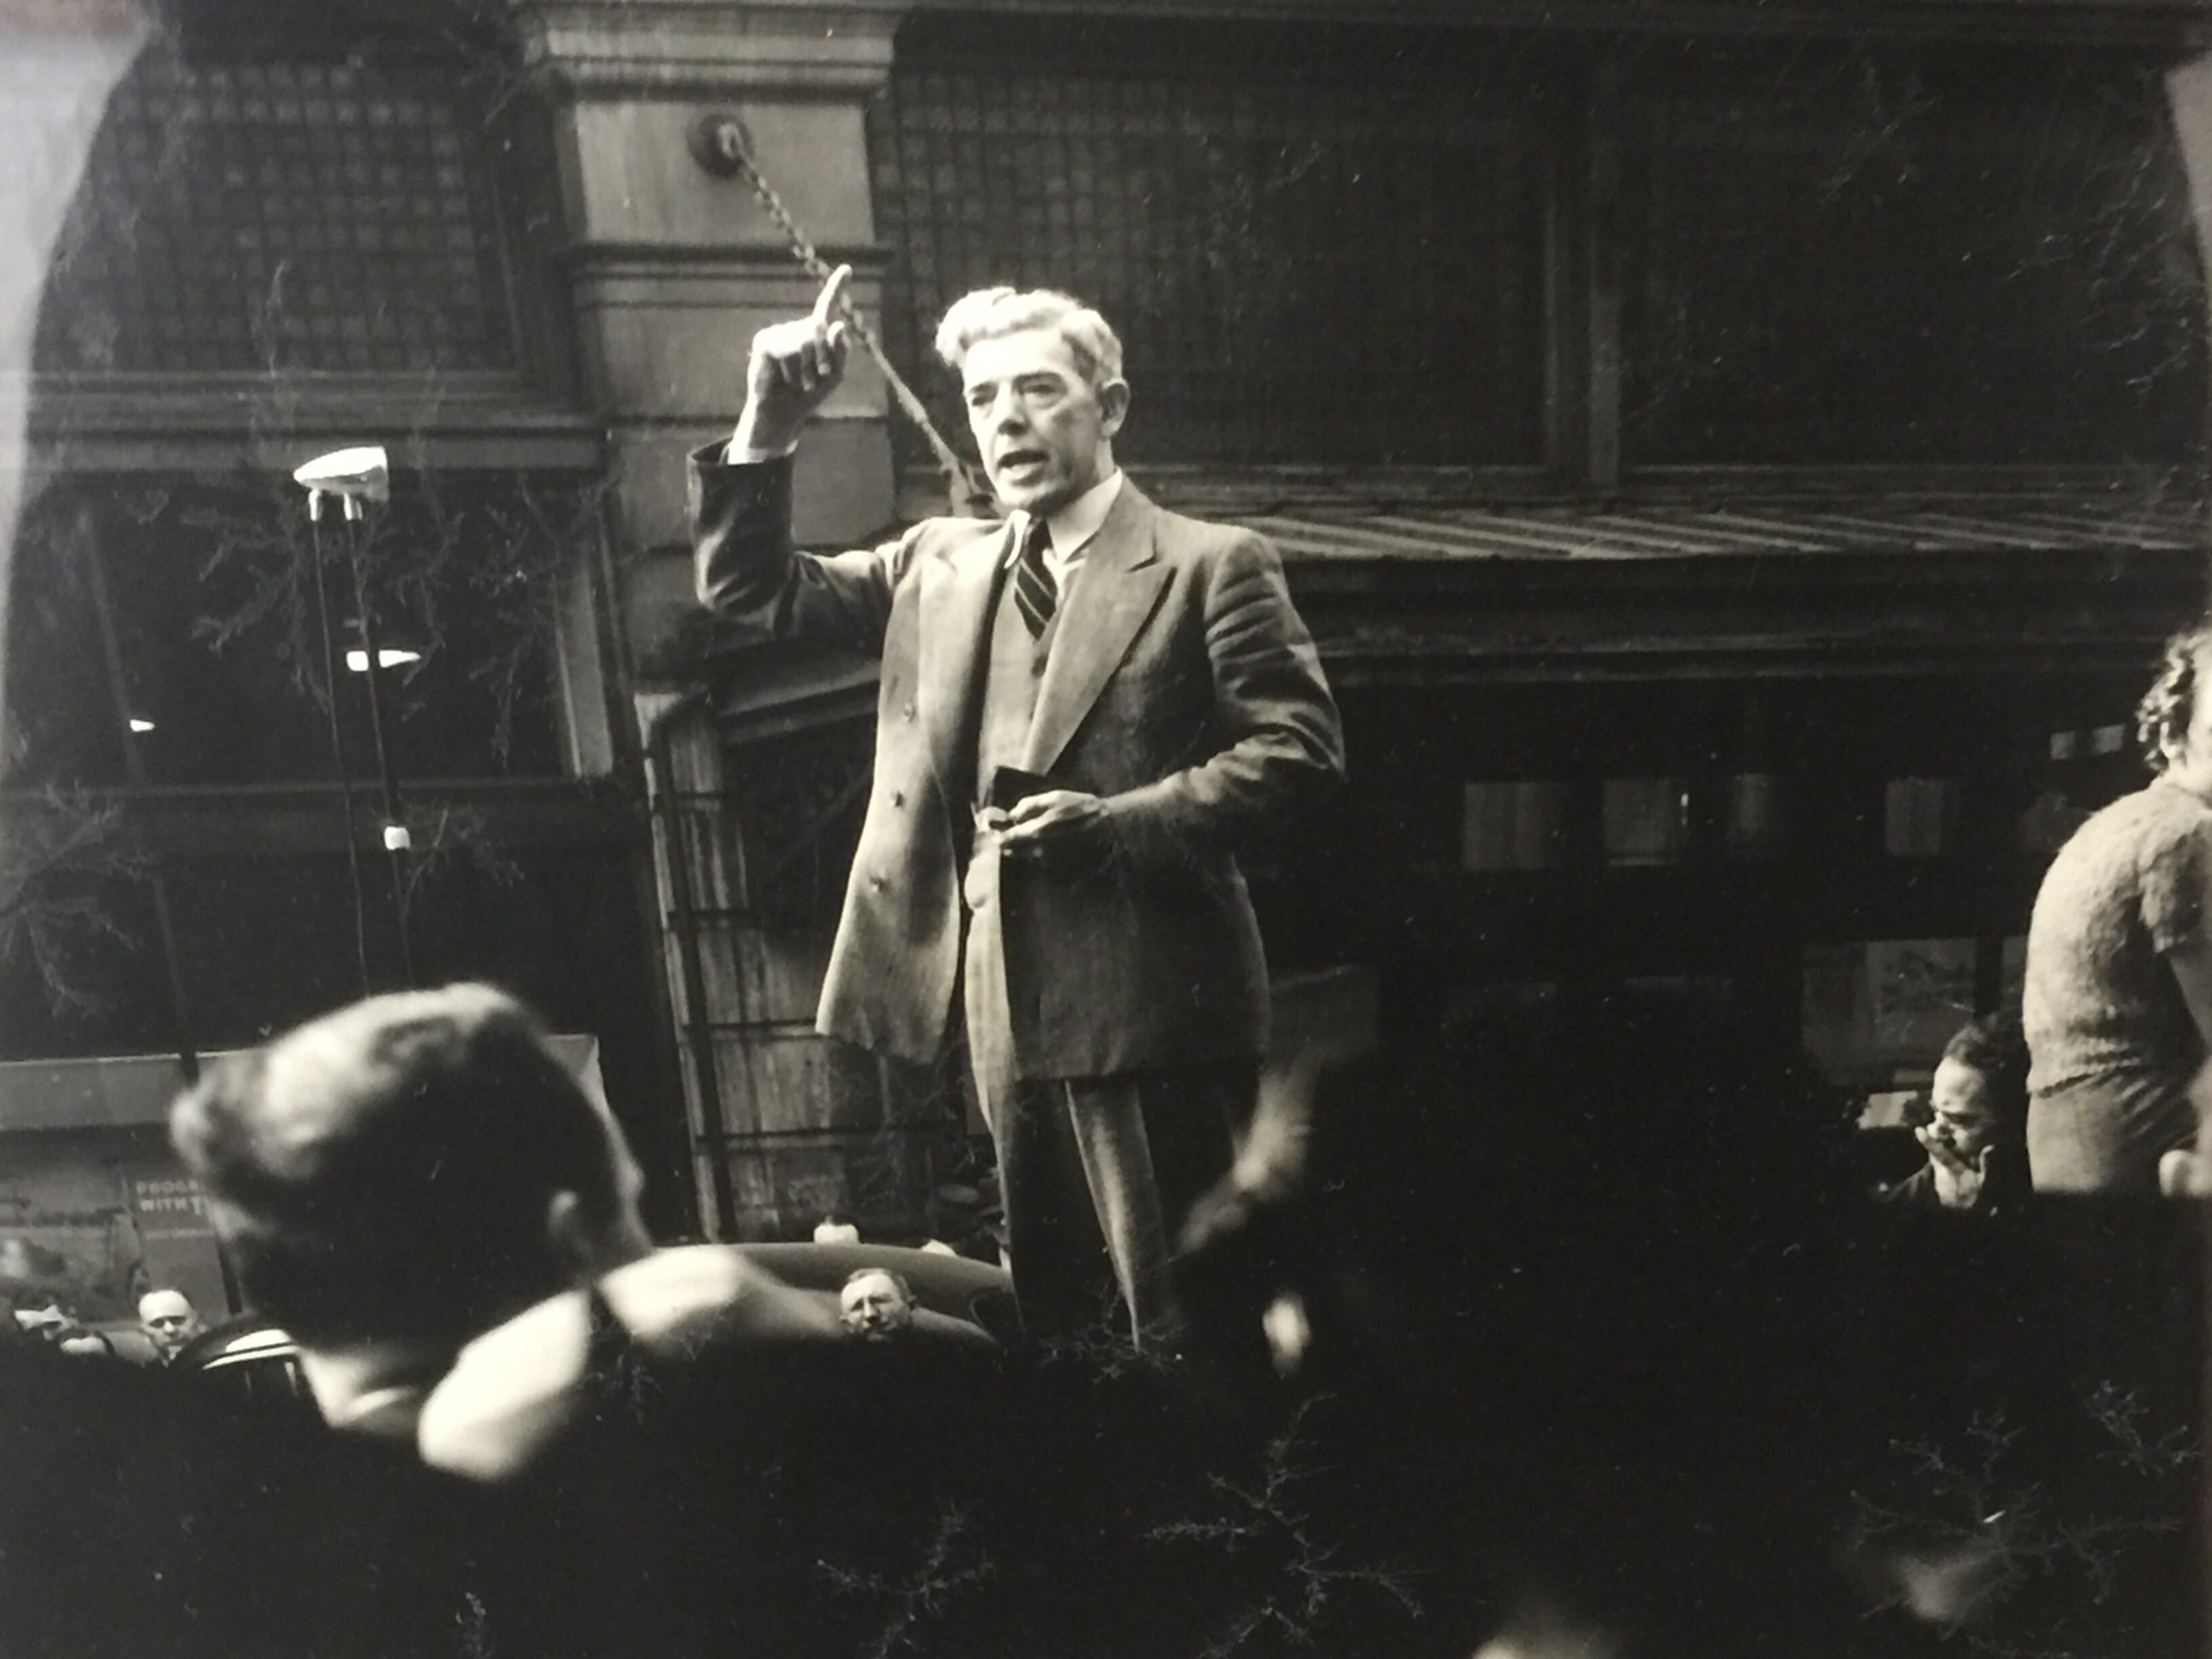 Dr. Fred Brown preaching in Market Square in the 1930s.